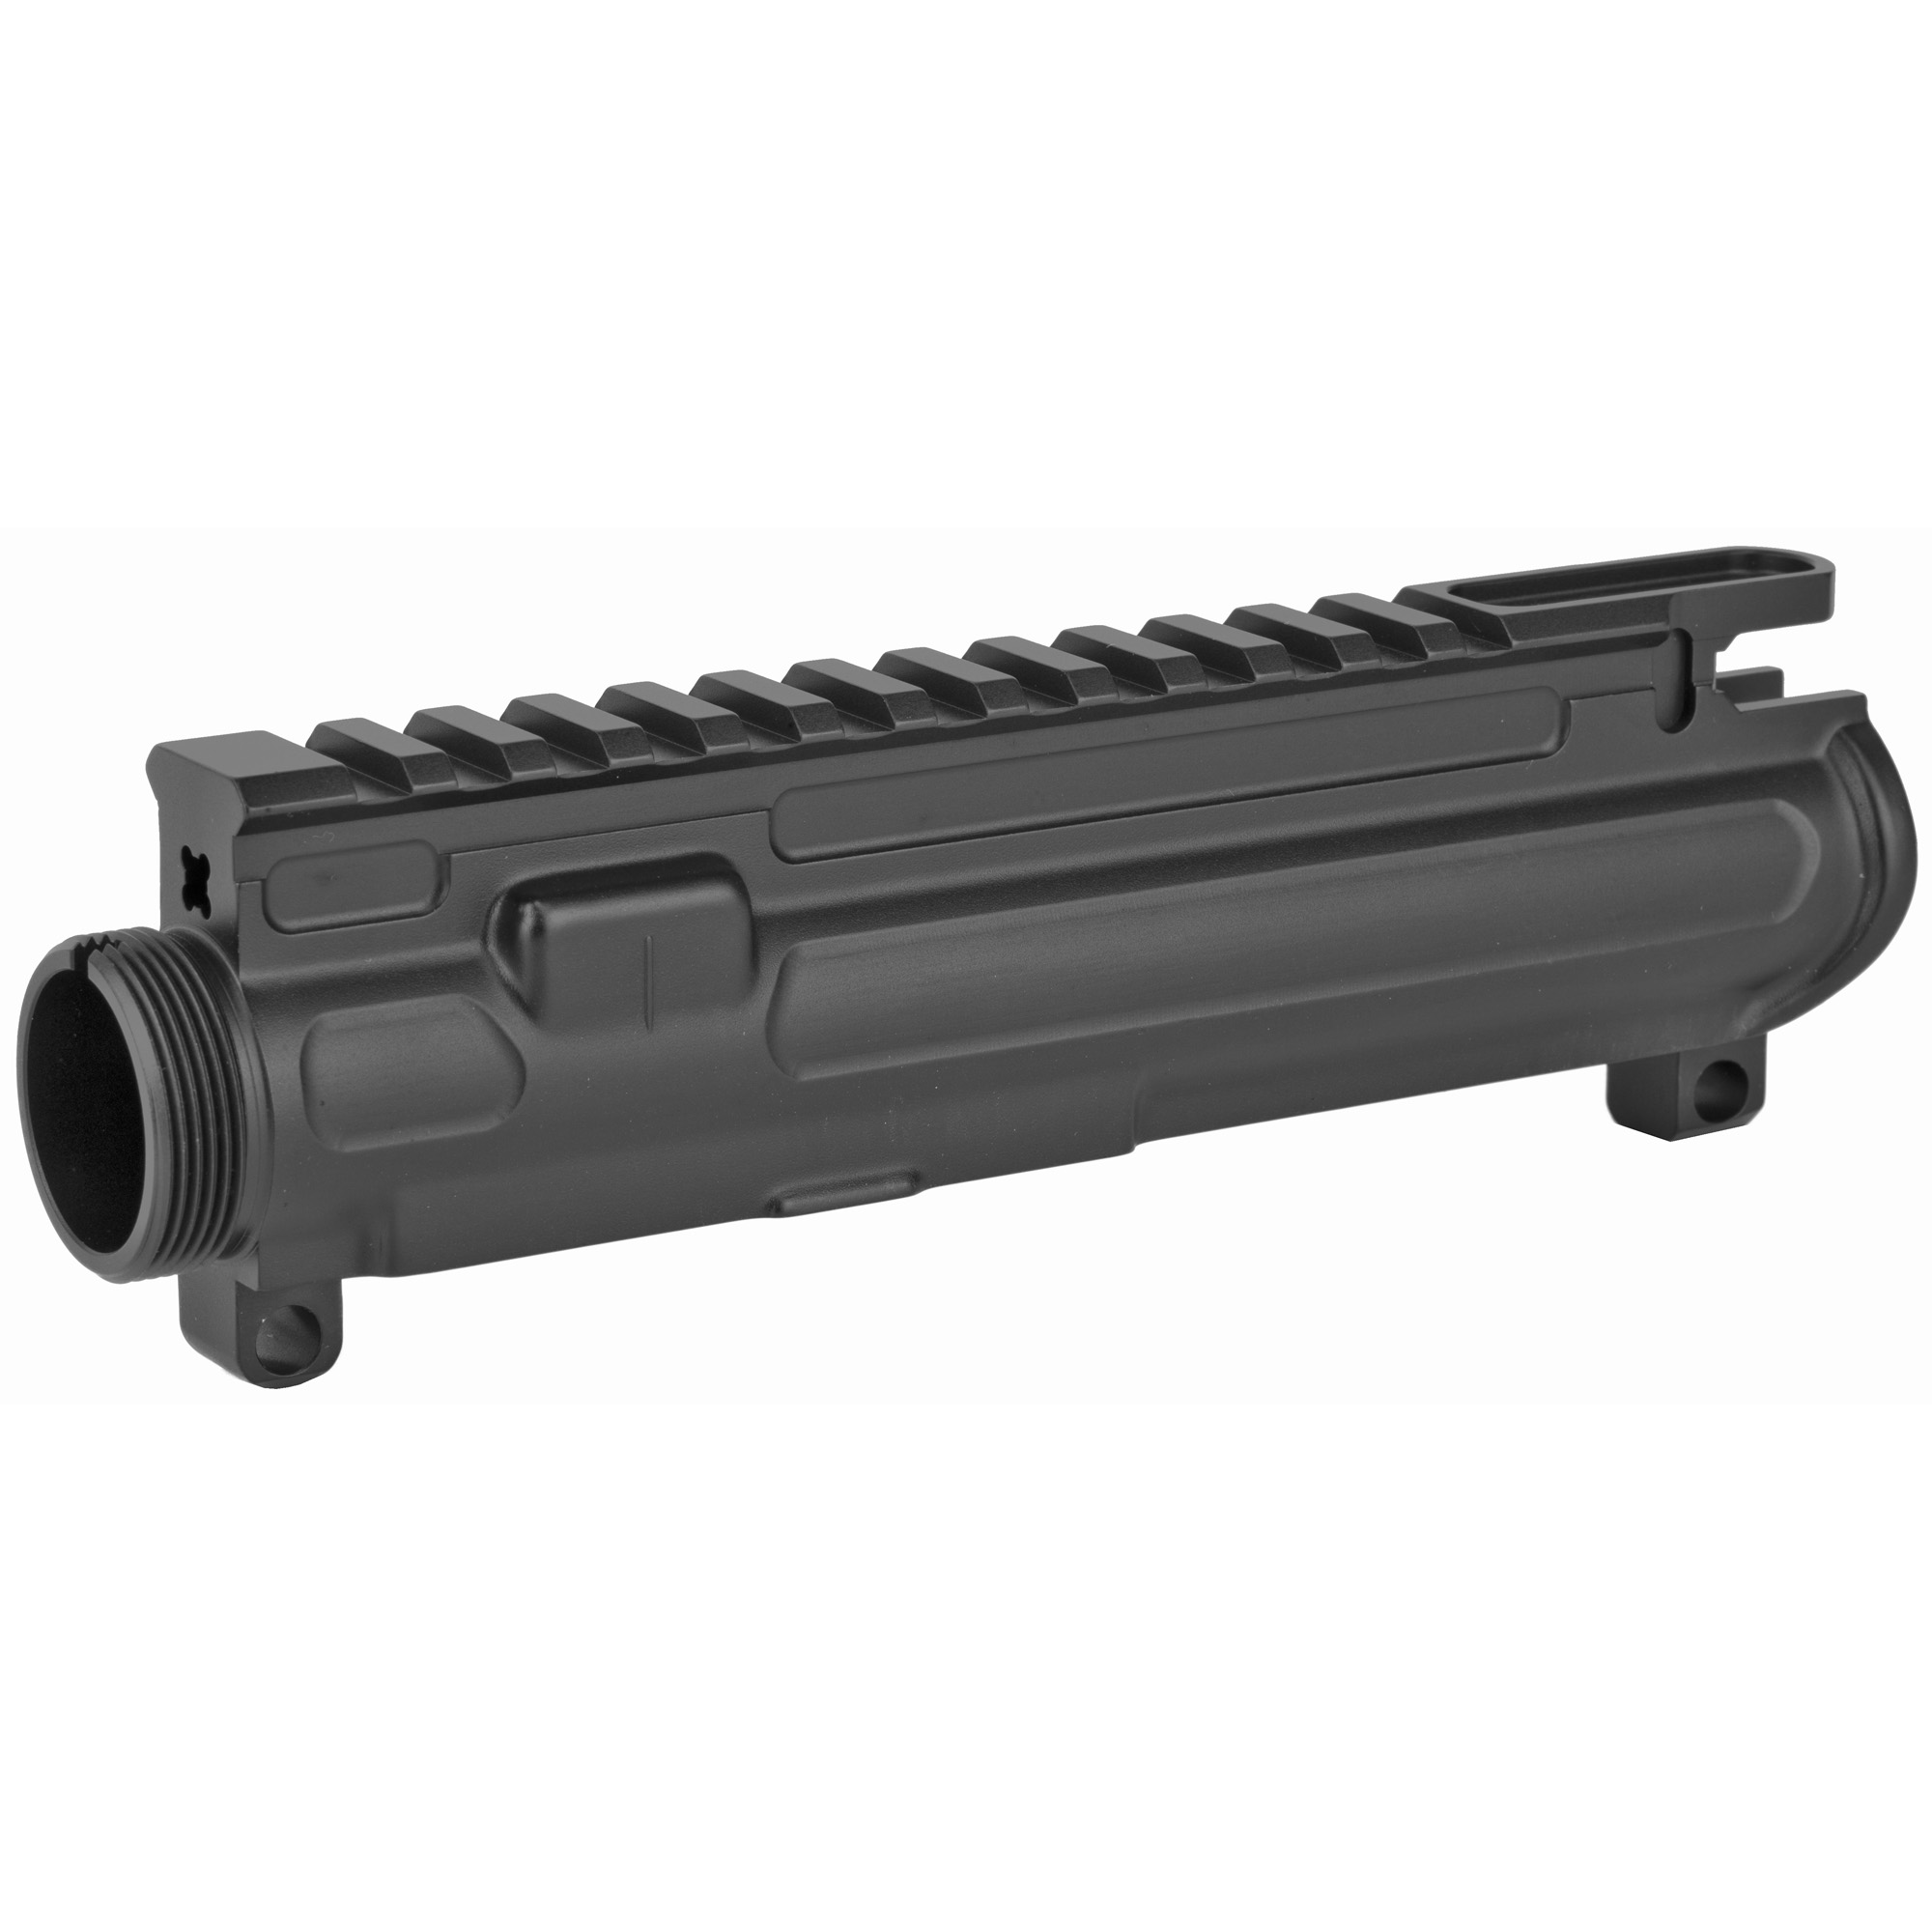 "New for 2019 From 2A Armament Palouse-Lite Forged Upper Receiver that is part of the new 2A Armament Builder Series. It is available as a complete set or as upper or lower only. The Builder Series will offer a vast number of 2A Armament components that have been made with the AR builder in mind. Not only does the Builder Series offer extremely high quality products"" but it also offers very competitive pricing. This is not any old AR15 forged upper receiver. It features 2A Armament signature lightening cuts and enhanced aesthetics. This upper will go perfectly with a new 2A Armament builder series handguards. All of the detail is machined to give this upper a refined look. This upper is the perfect starting place for any high quality build."